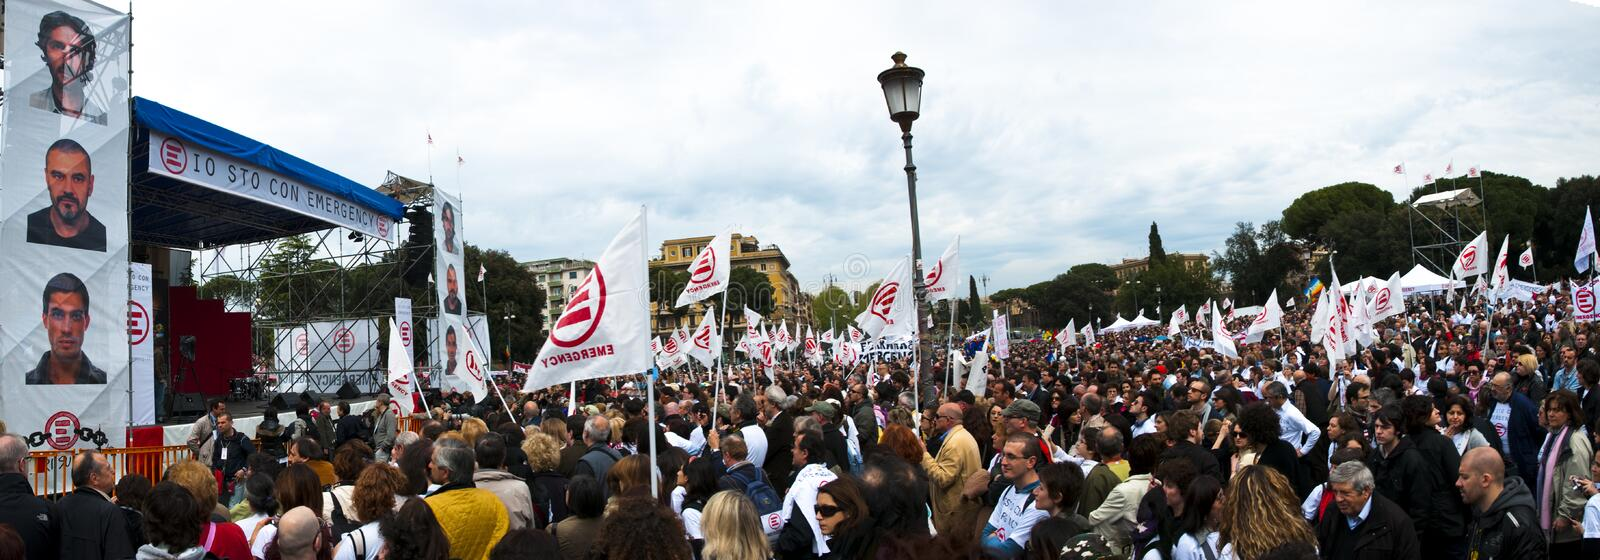 Demonstration for Emergency ong in Rome royalty free stock image